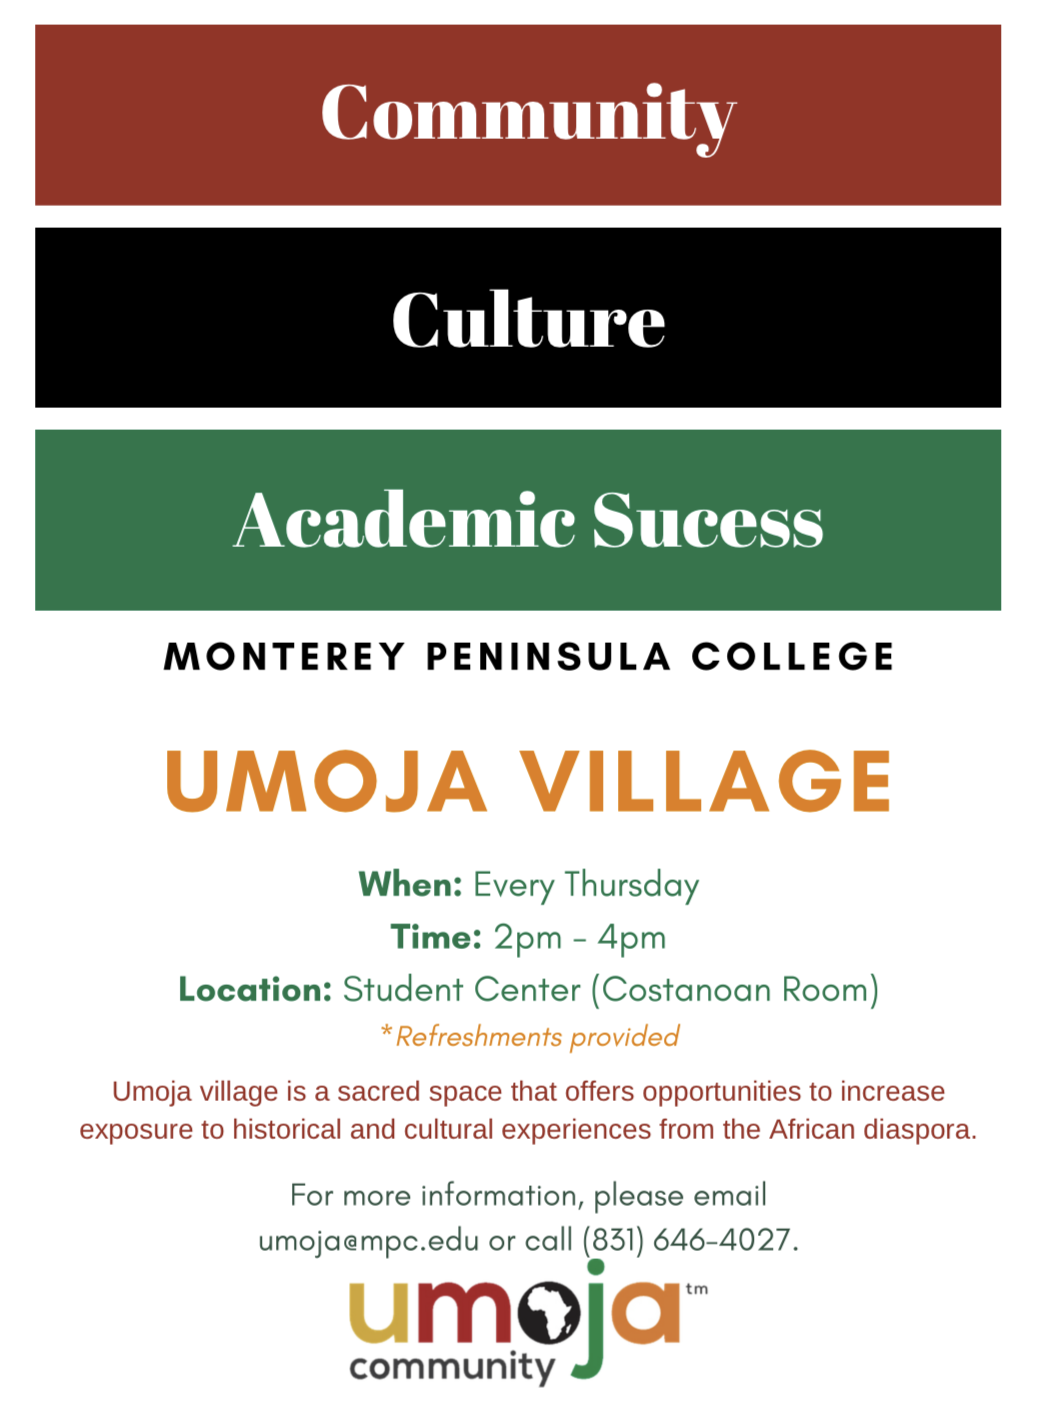 Flyer Promoting the weekly Umoja Village